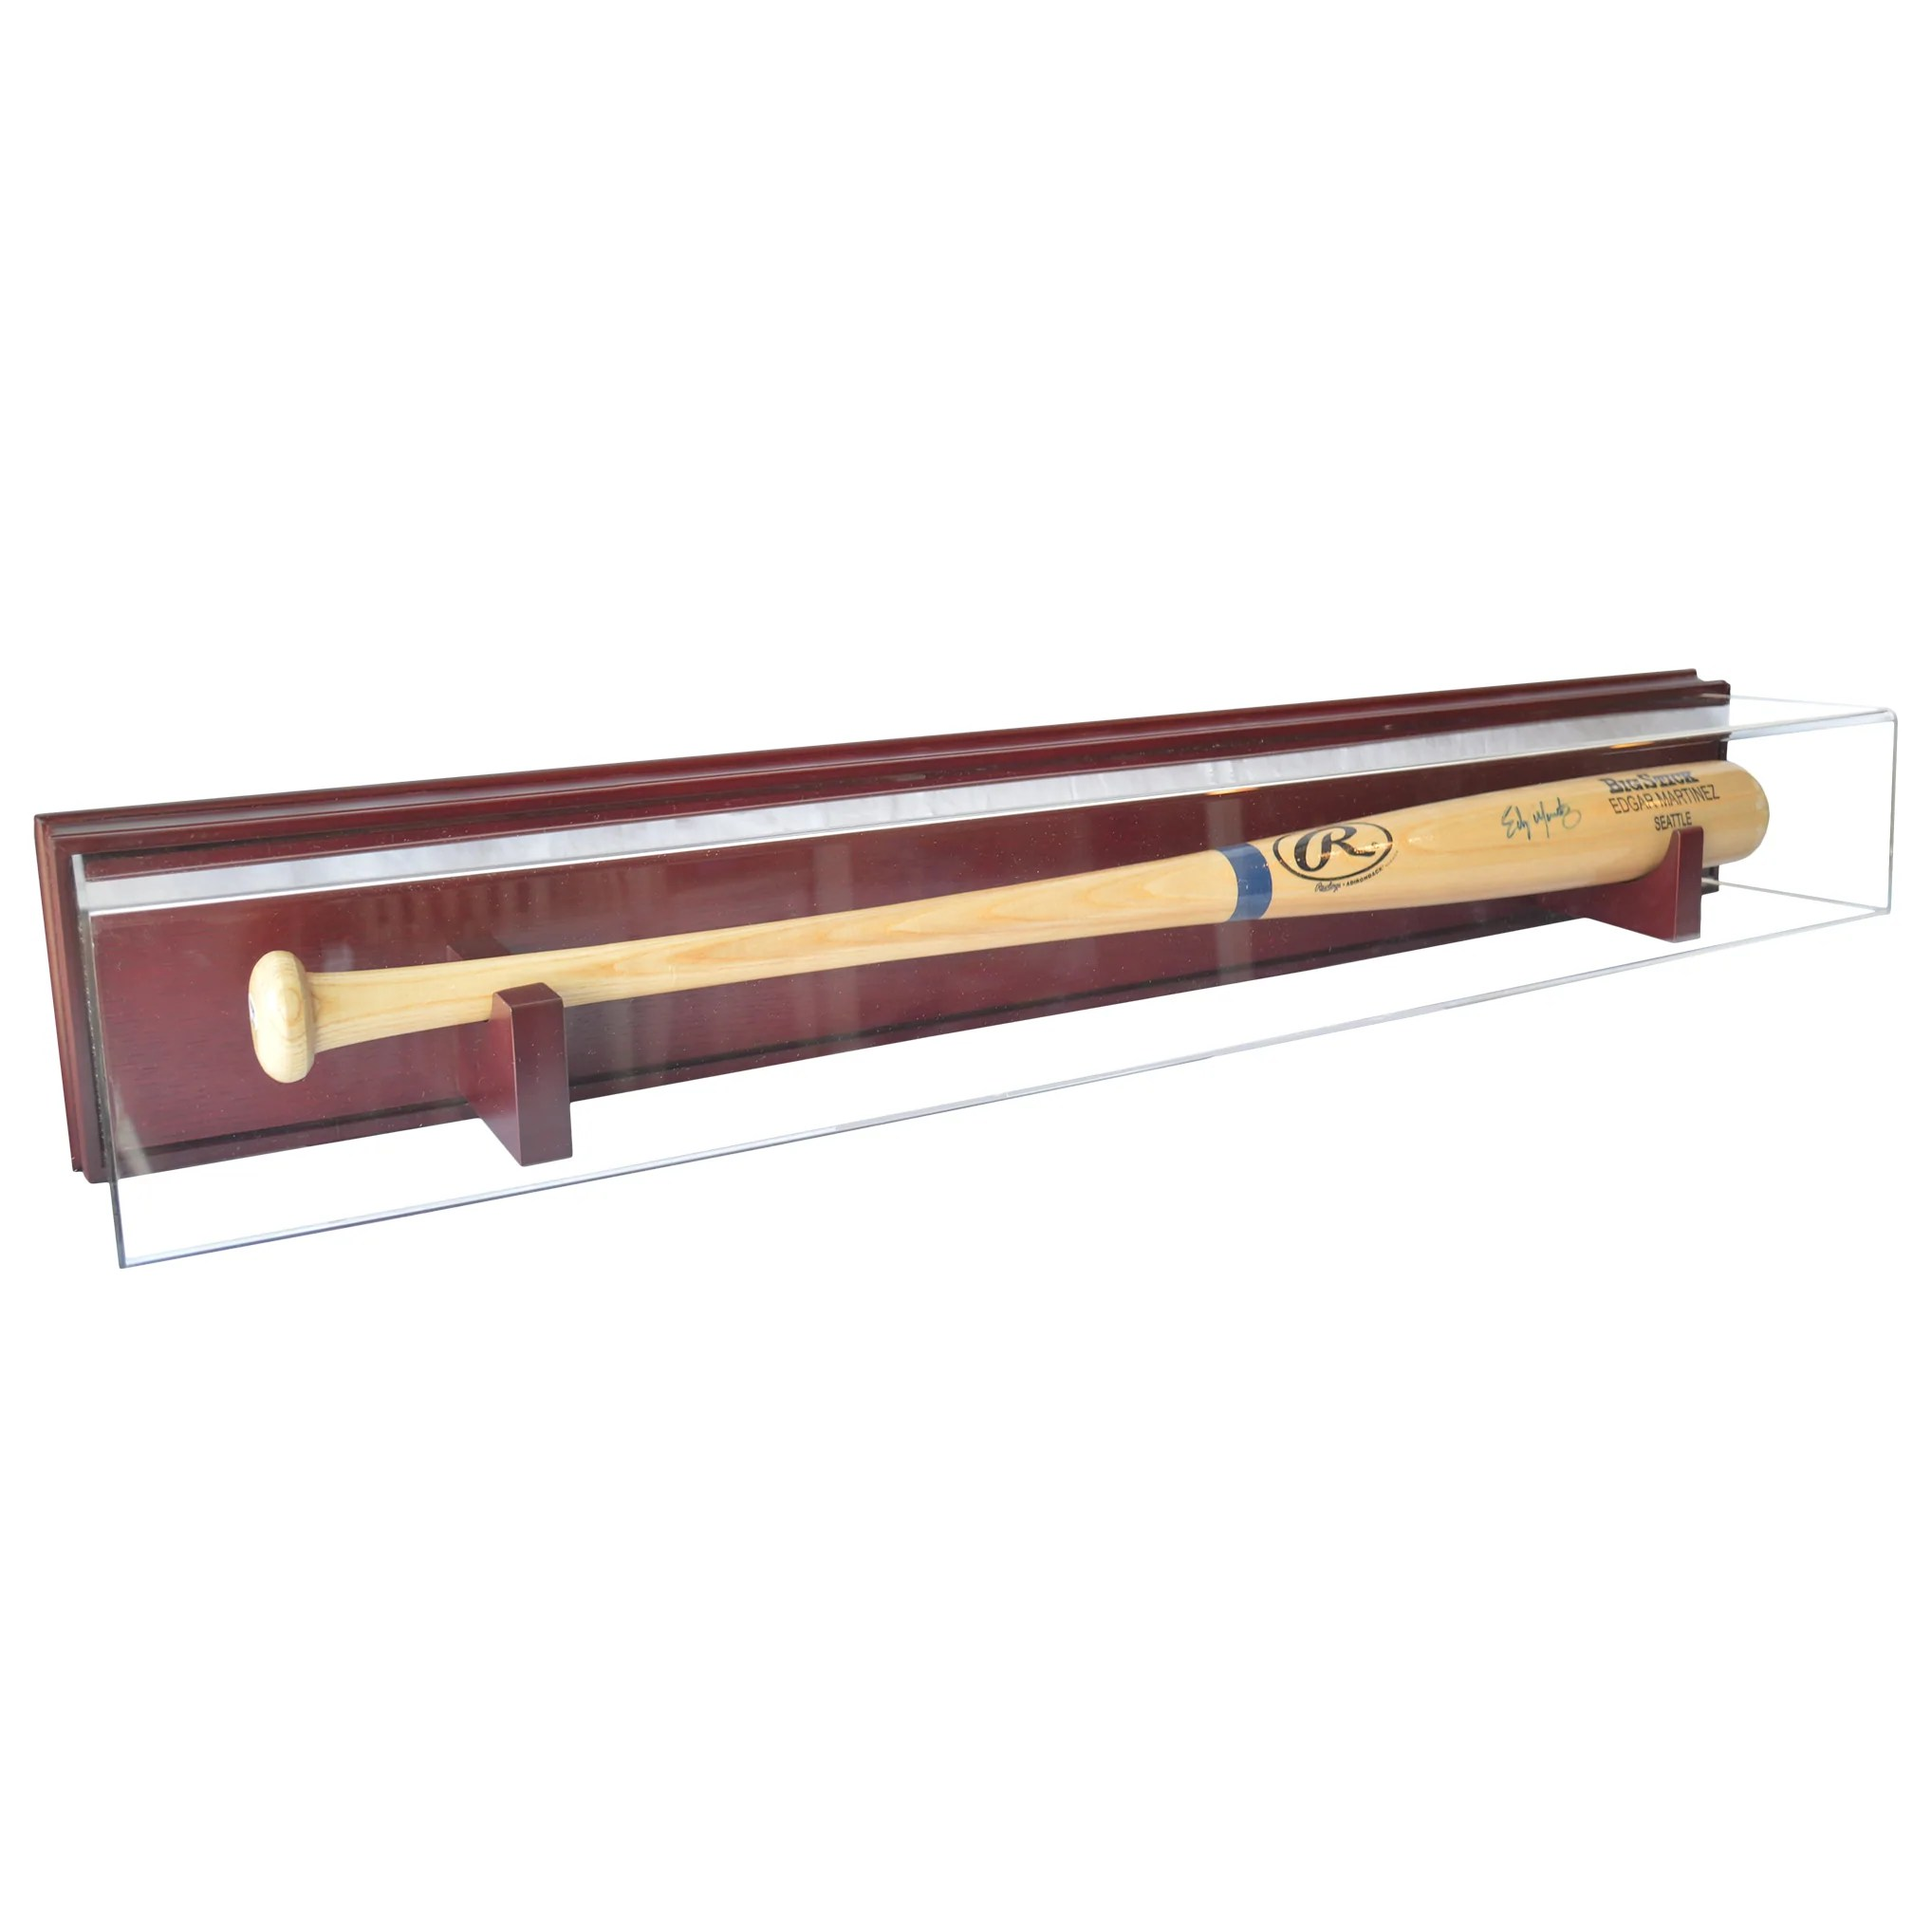 Wall Mounted Display Case Baseball Bat Wood Base Wall Mount Display Case